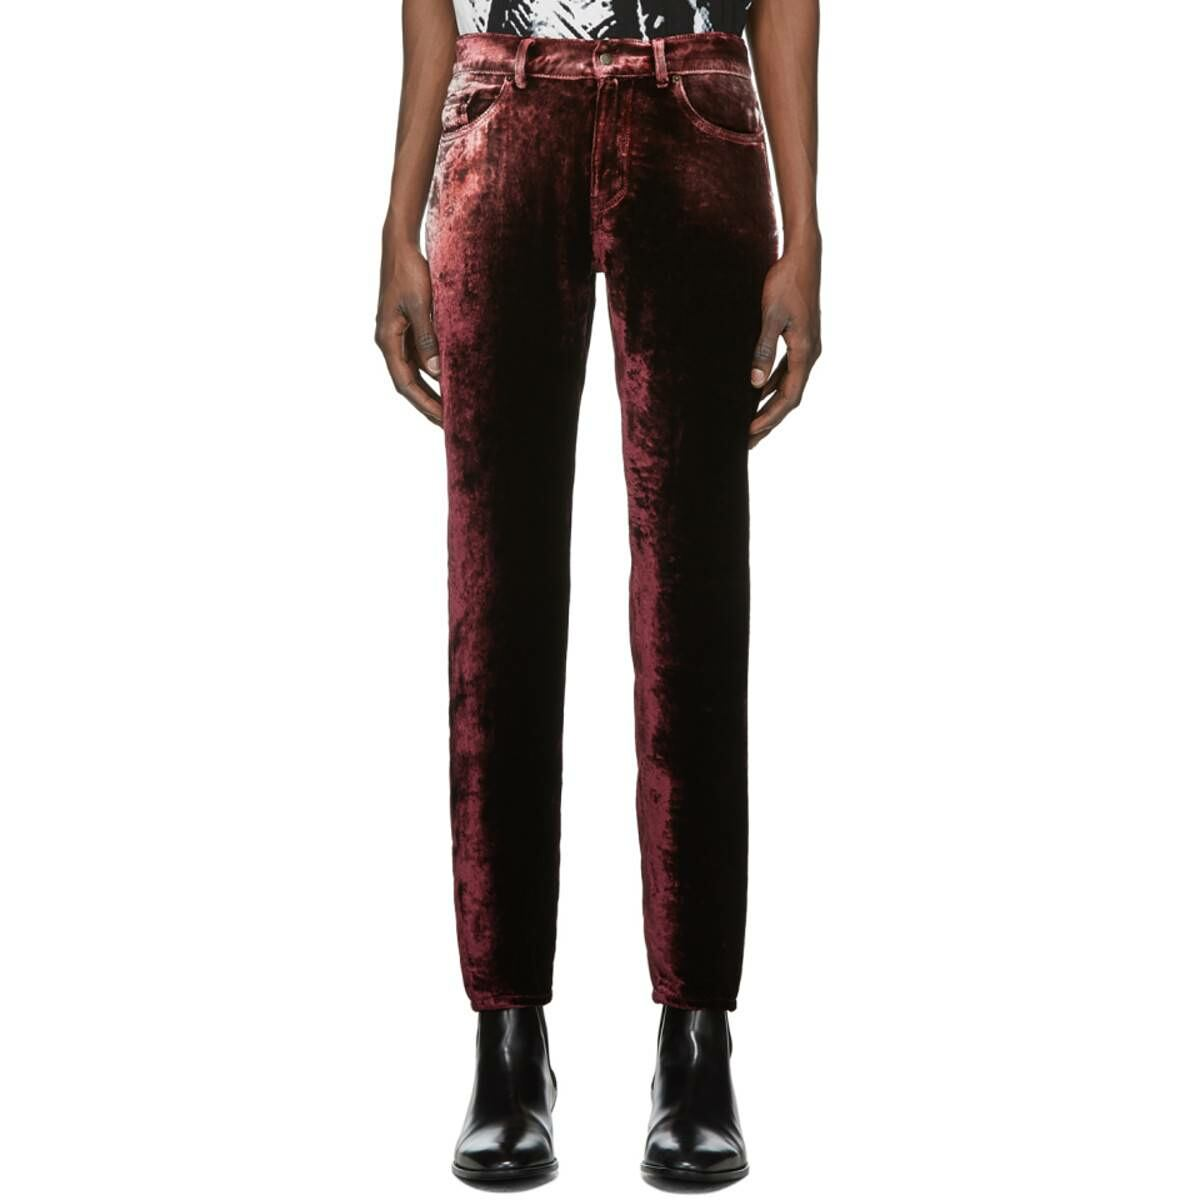 Saint Laurent Burgundy Velvet Trousers Ssense USA MEN Men FASHION Mens TROUSERS